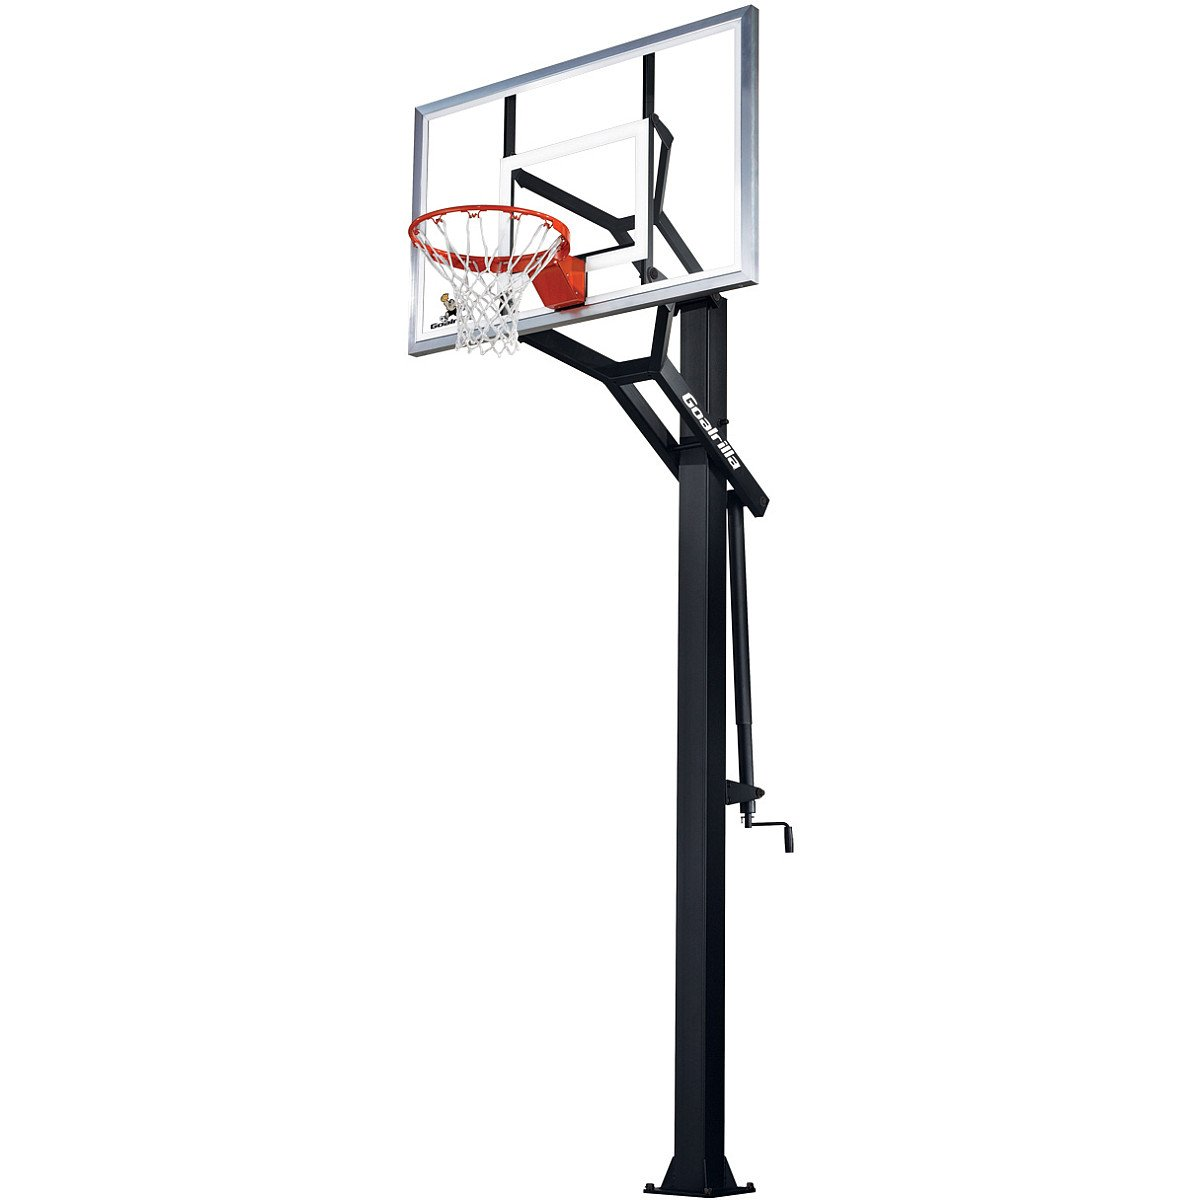 Image Result For In Ground Basketball Goal